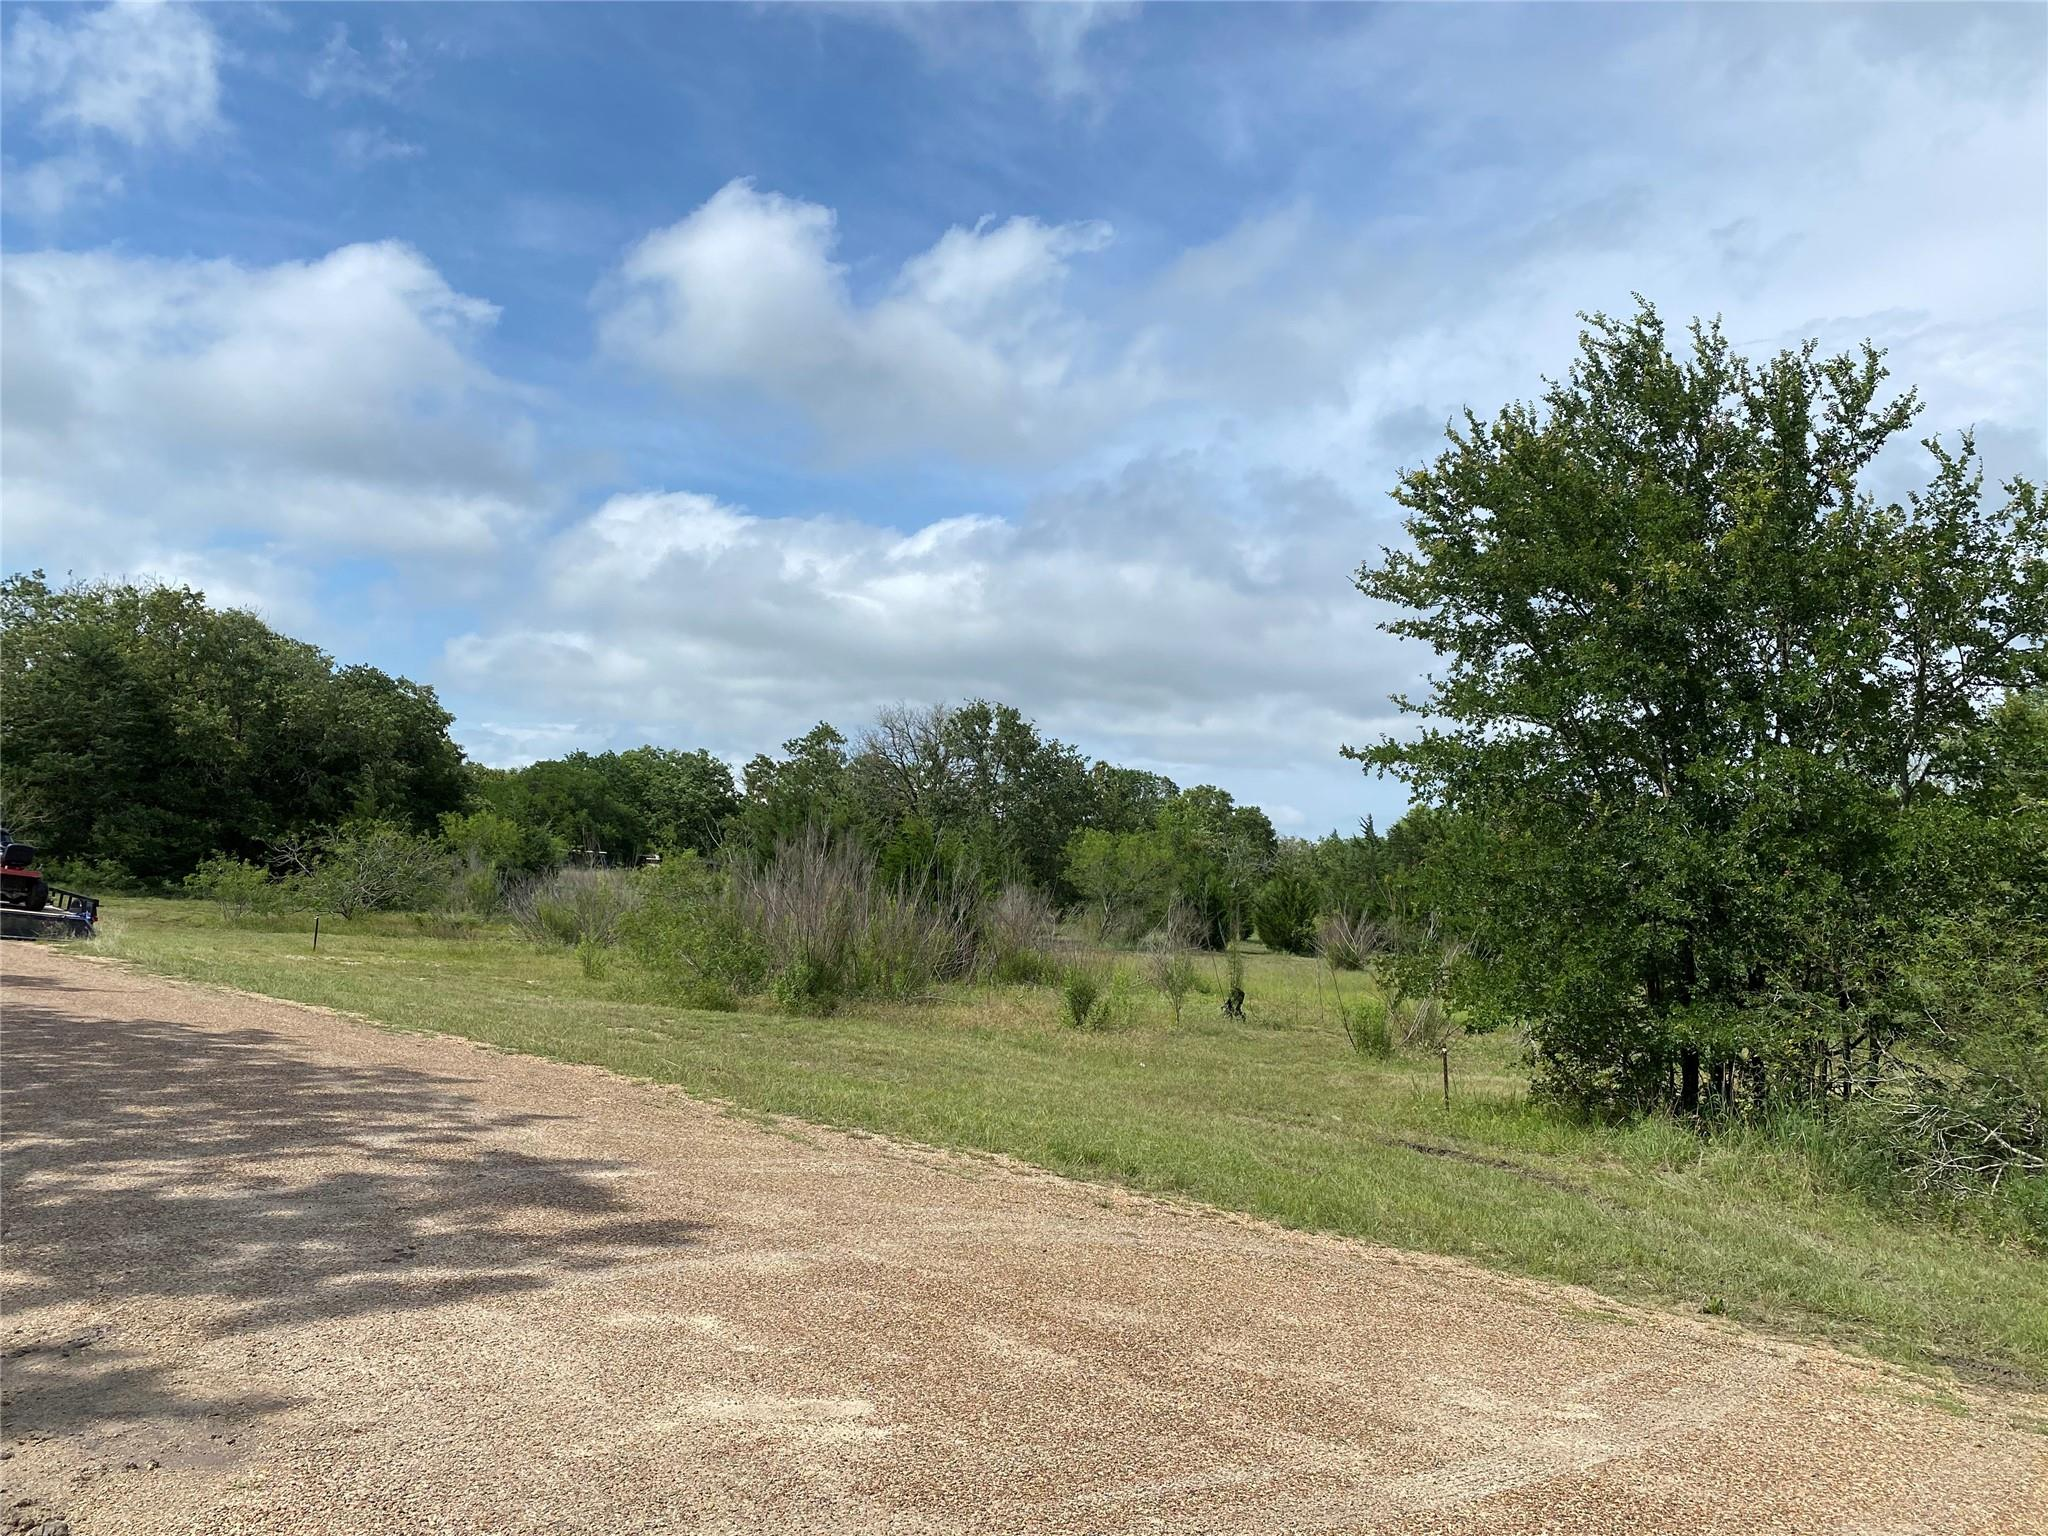 Tbd County Road 471, Lots 5,6,7 Property Photo